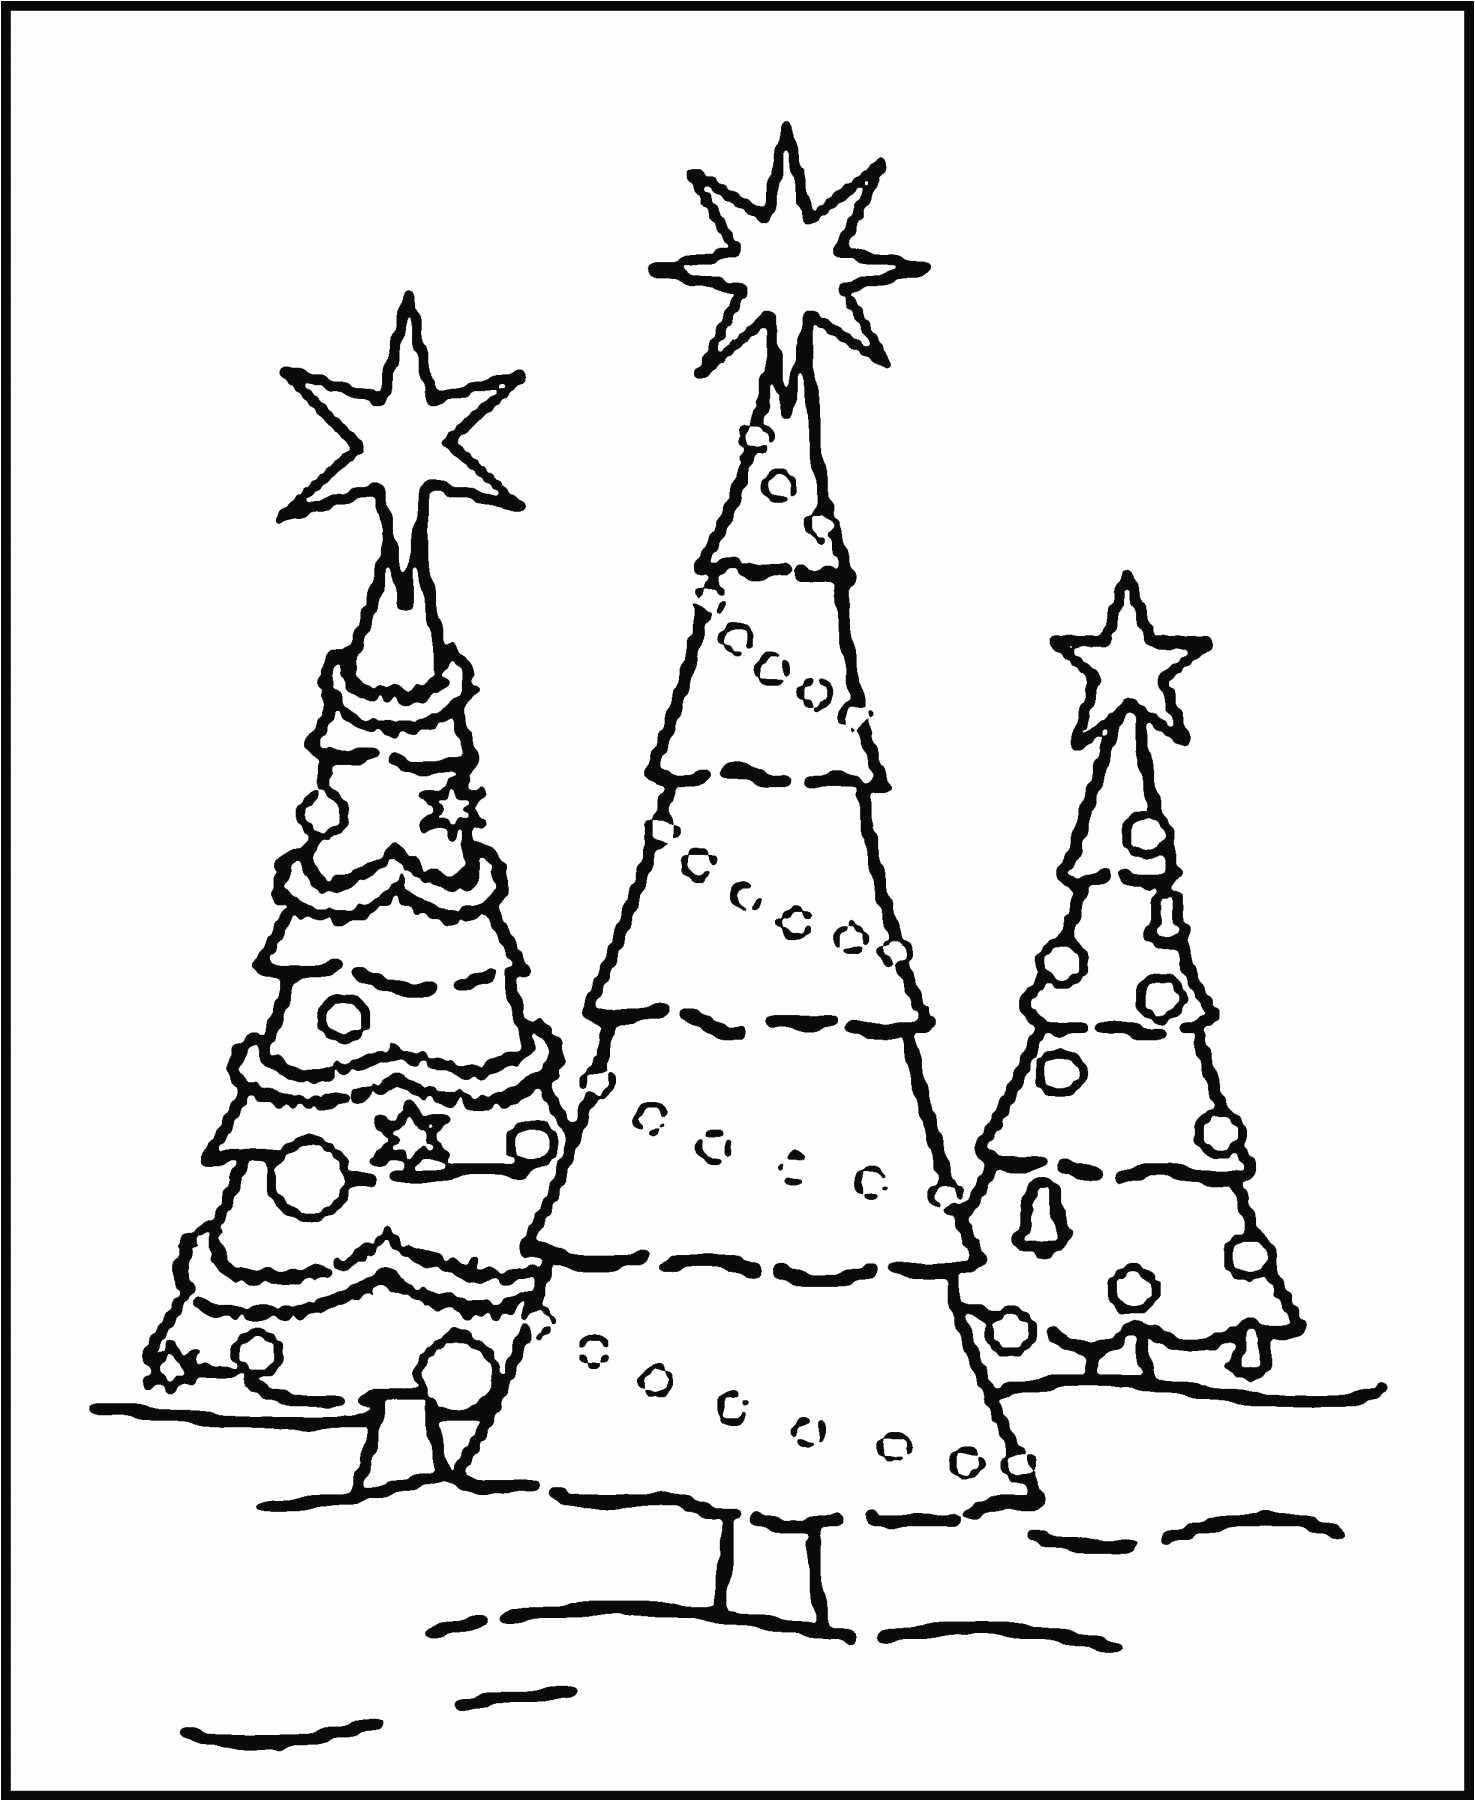 Drawing Cute Christmas Tree Unique Christmas Trees Clip Art Ttny Info